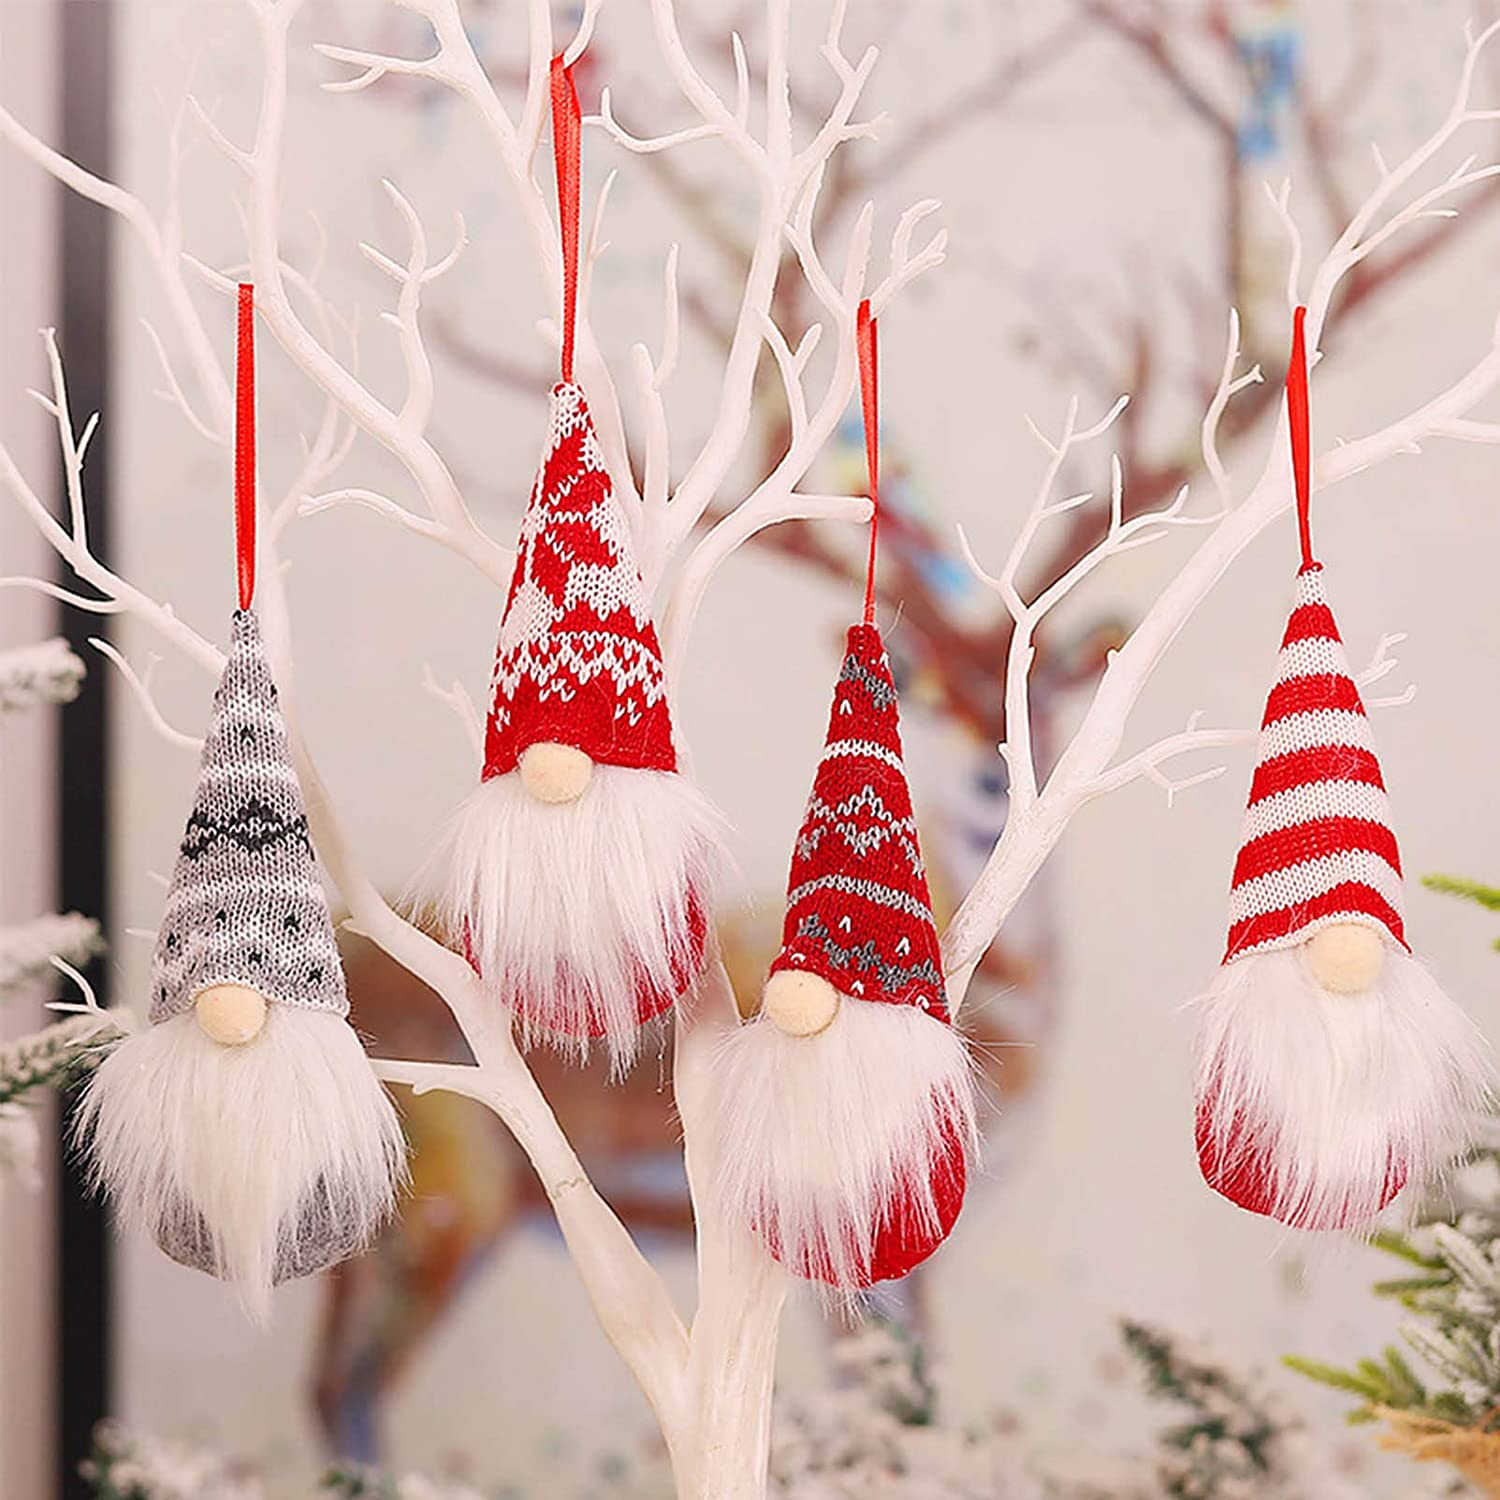 CosyFamily 4 Pack Christmas Tree Hanging Gnomes Ornaments Set - Xmas Hanging Decorations Gnome Hat for Christmas Tree Fireplace Home Decor